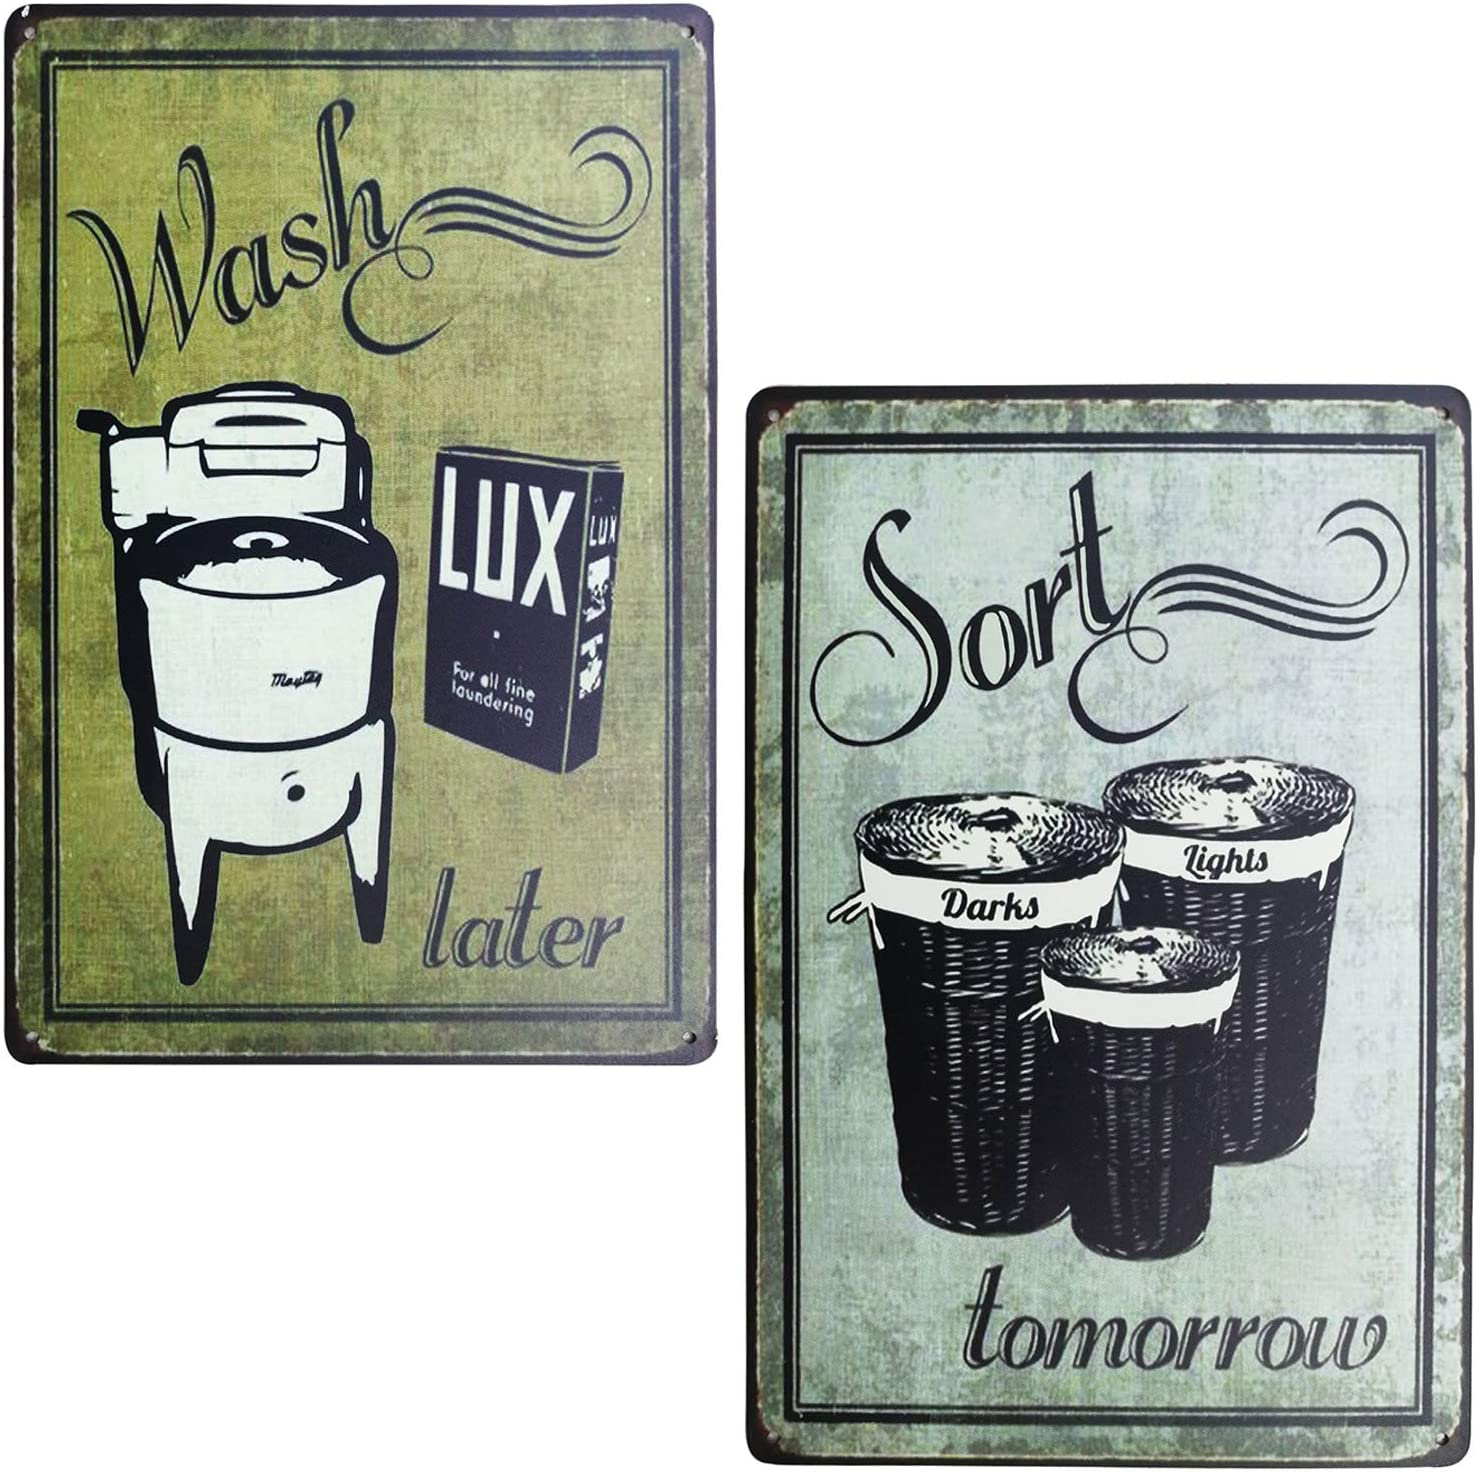 PXIYOU Wash & Sort Tin Sign Bundle Vintage Laundry Room Signs Rustic Wash Room,Bathroom Room Country Home Decor 2Pcs-8X12Inch